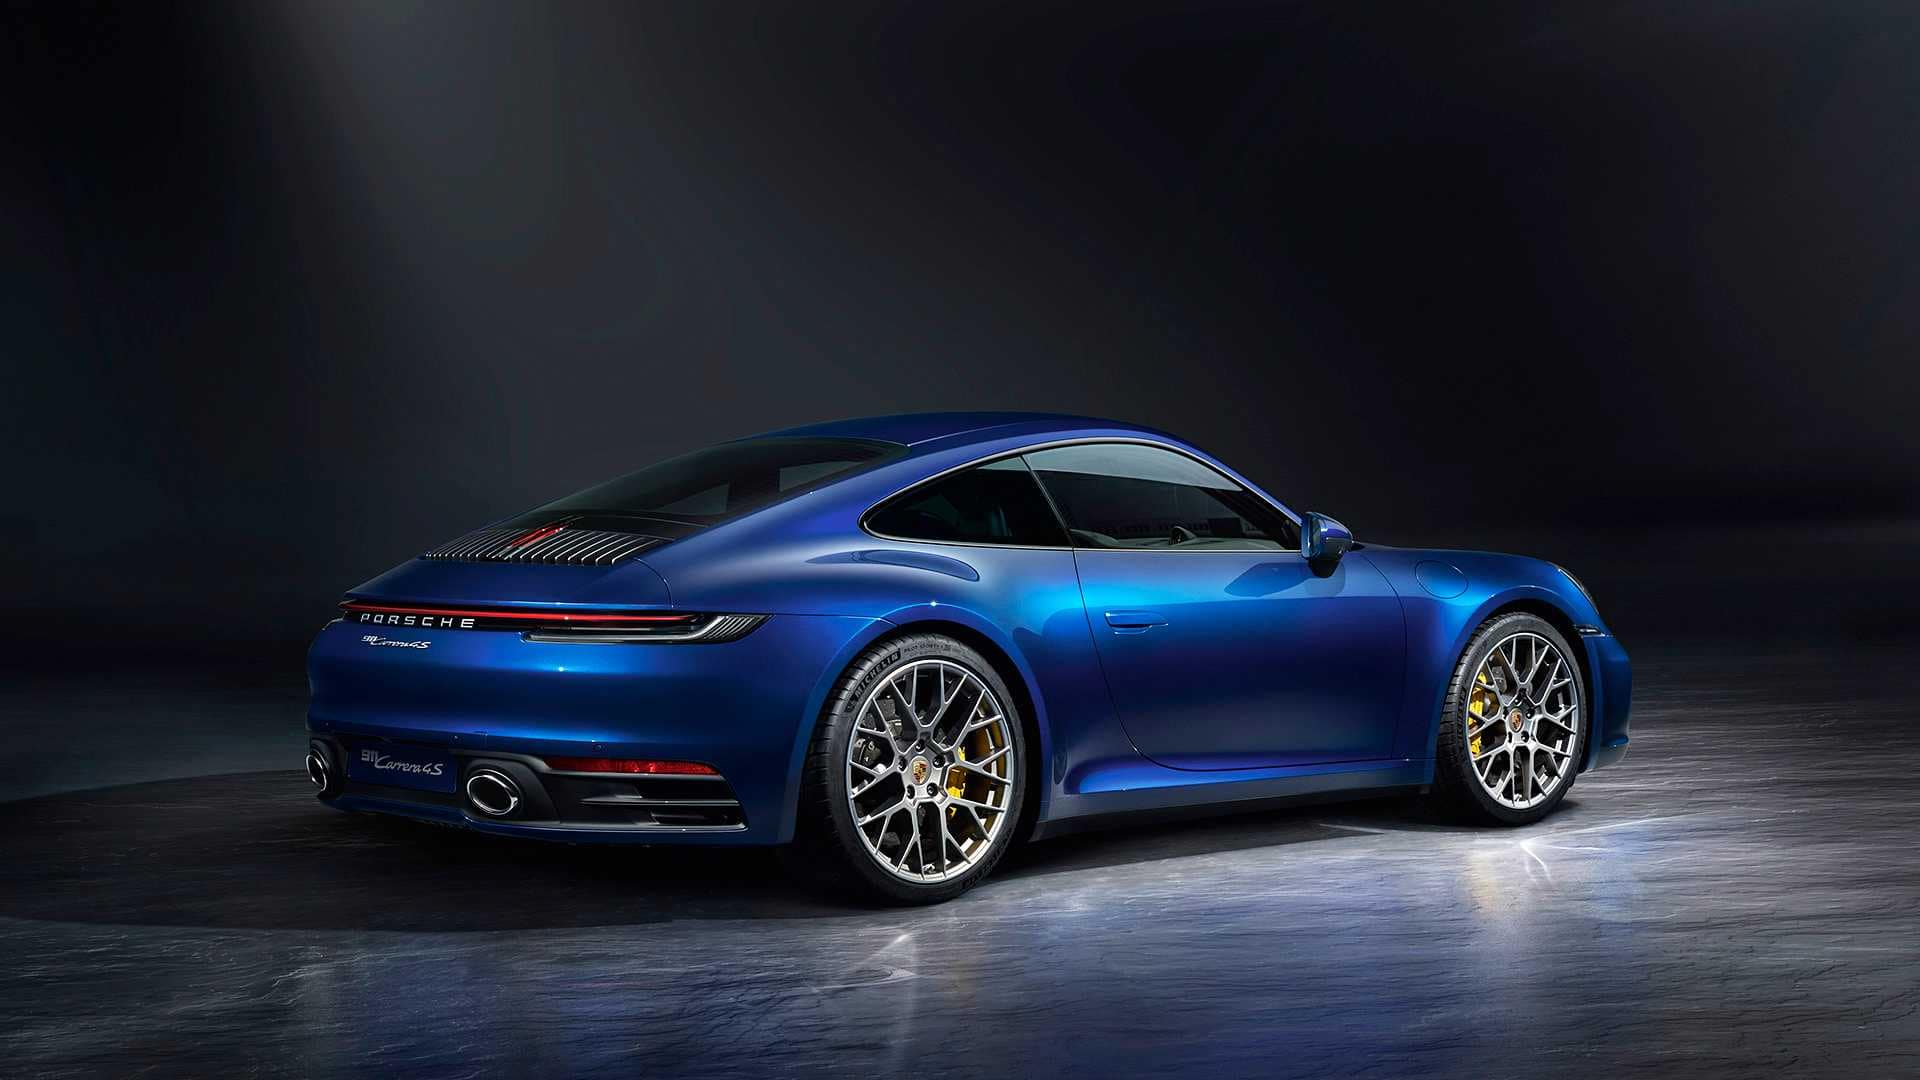 2019 911 Carrera Blue Exterior Back View